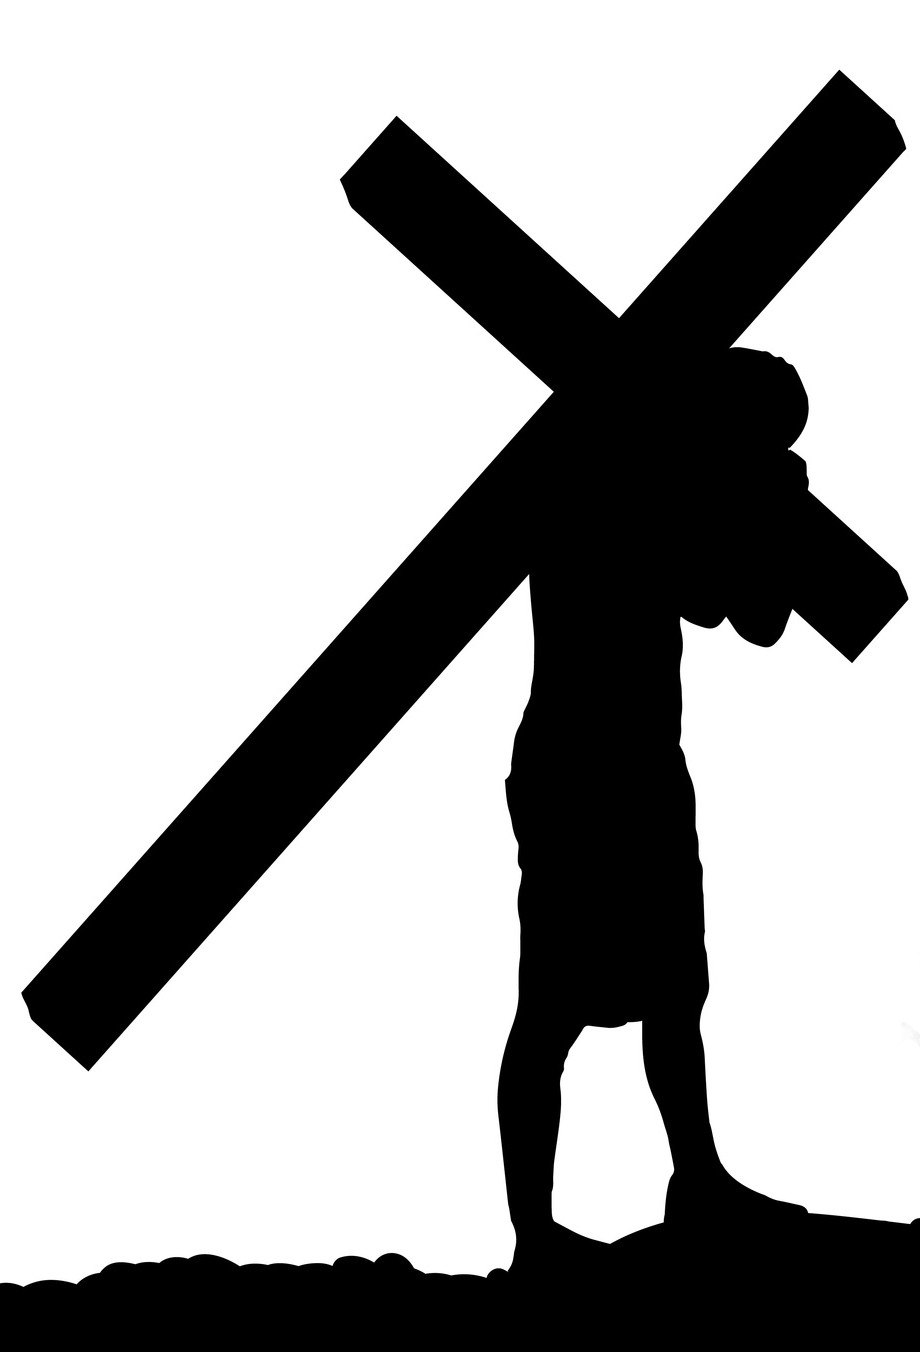 medium resolution of 920x1352 photos stations of the cross clipart drawings art gallery